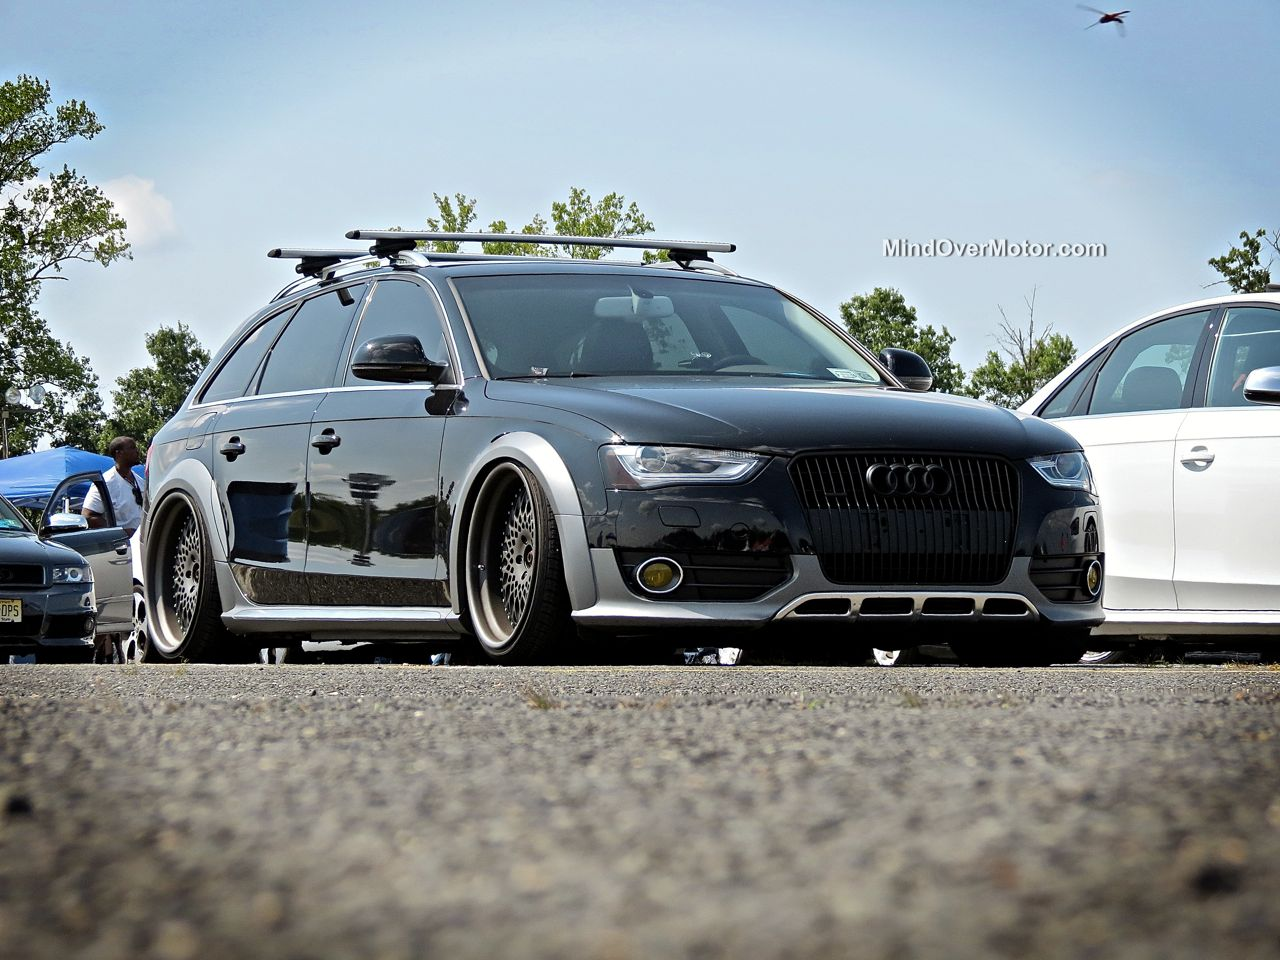 Slammed Audi Allroad at Waterfest 20